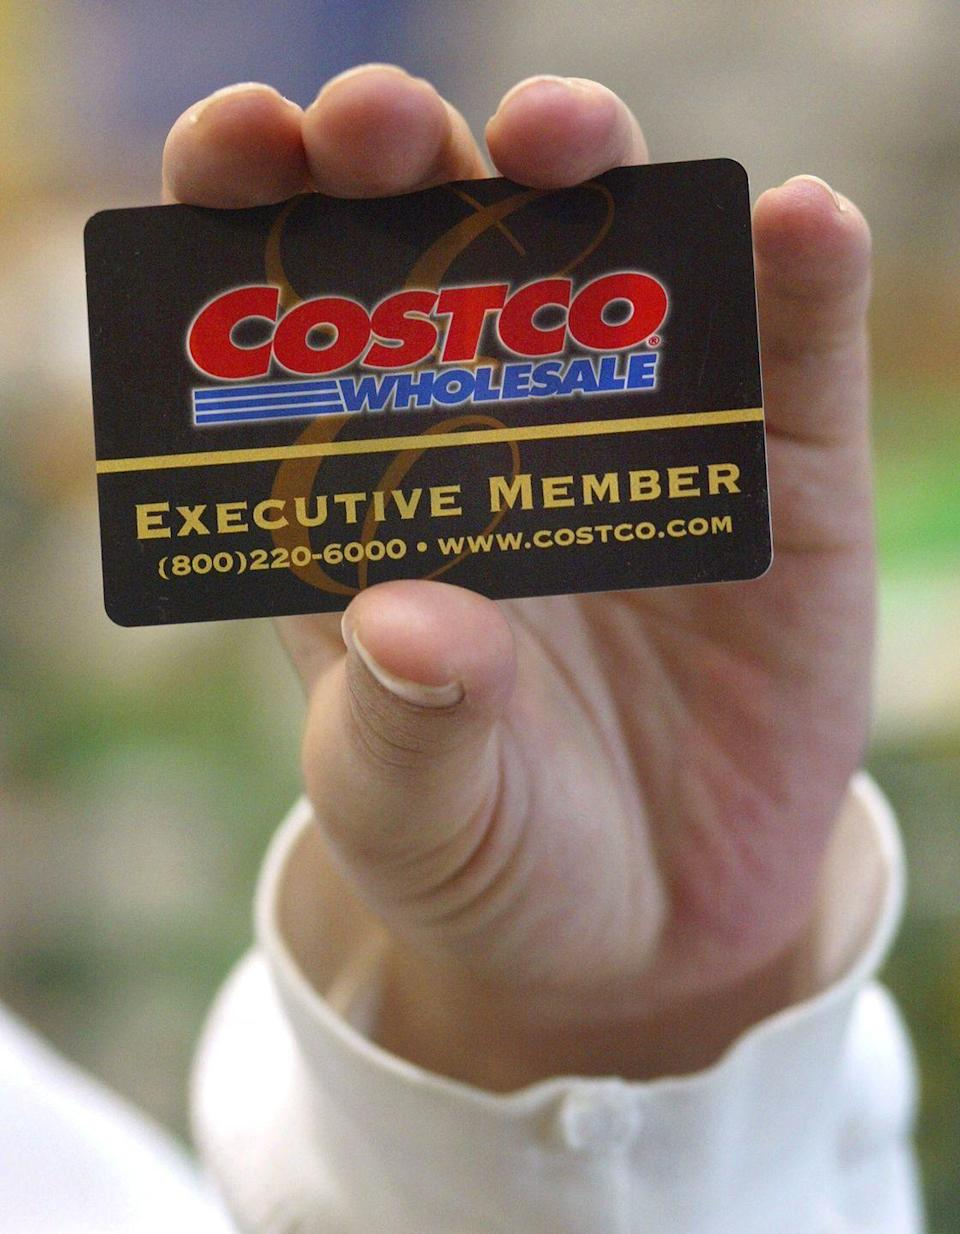 <p>You don't need a member card for everything. Depending on what state you live in, Costco is required to allow you to use the pharmacy and optician without a membership.</p>